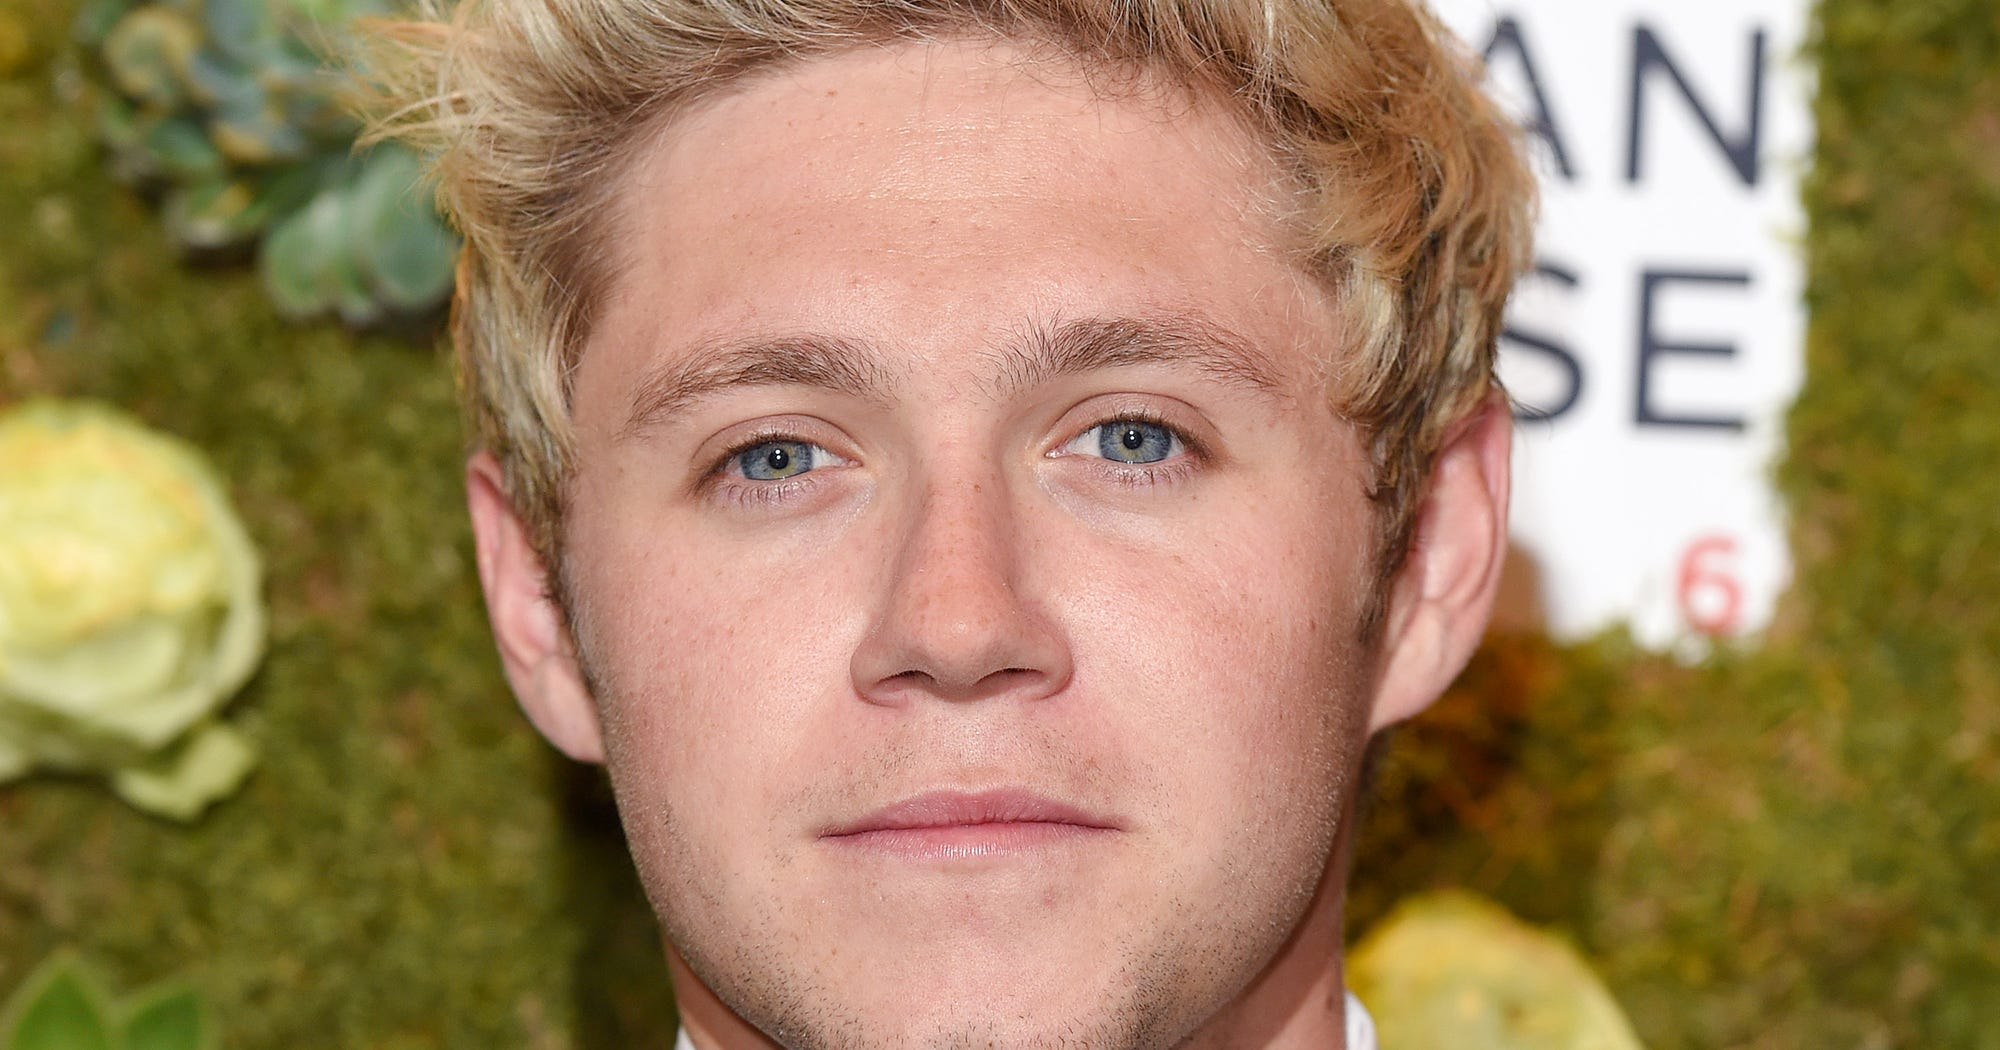 Harry Styles Natural Hair: Niall Horan Brunette Bleach Blonde Before After Photos